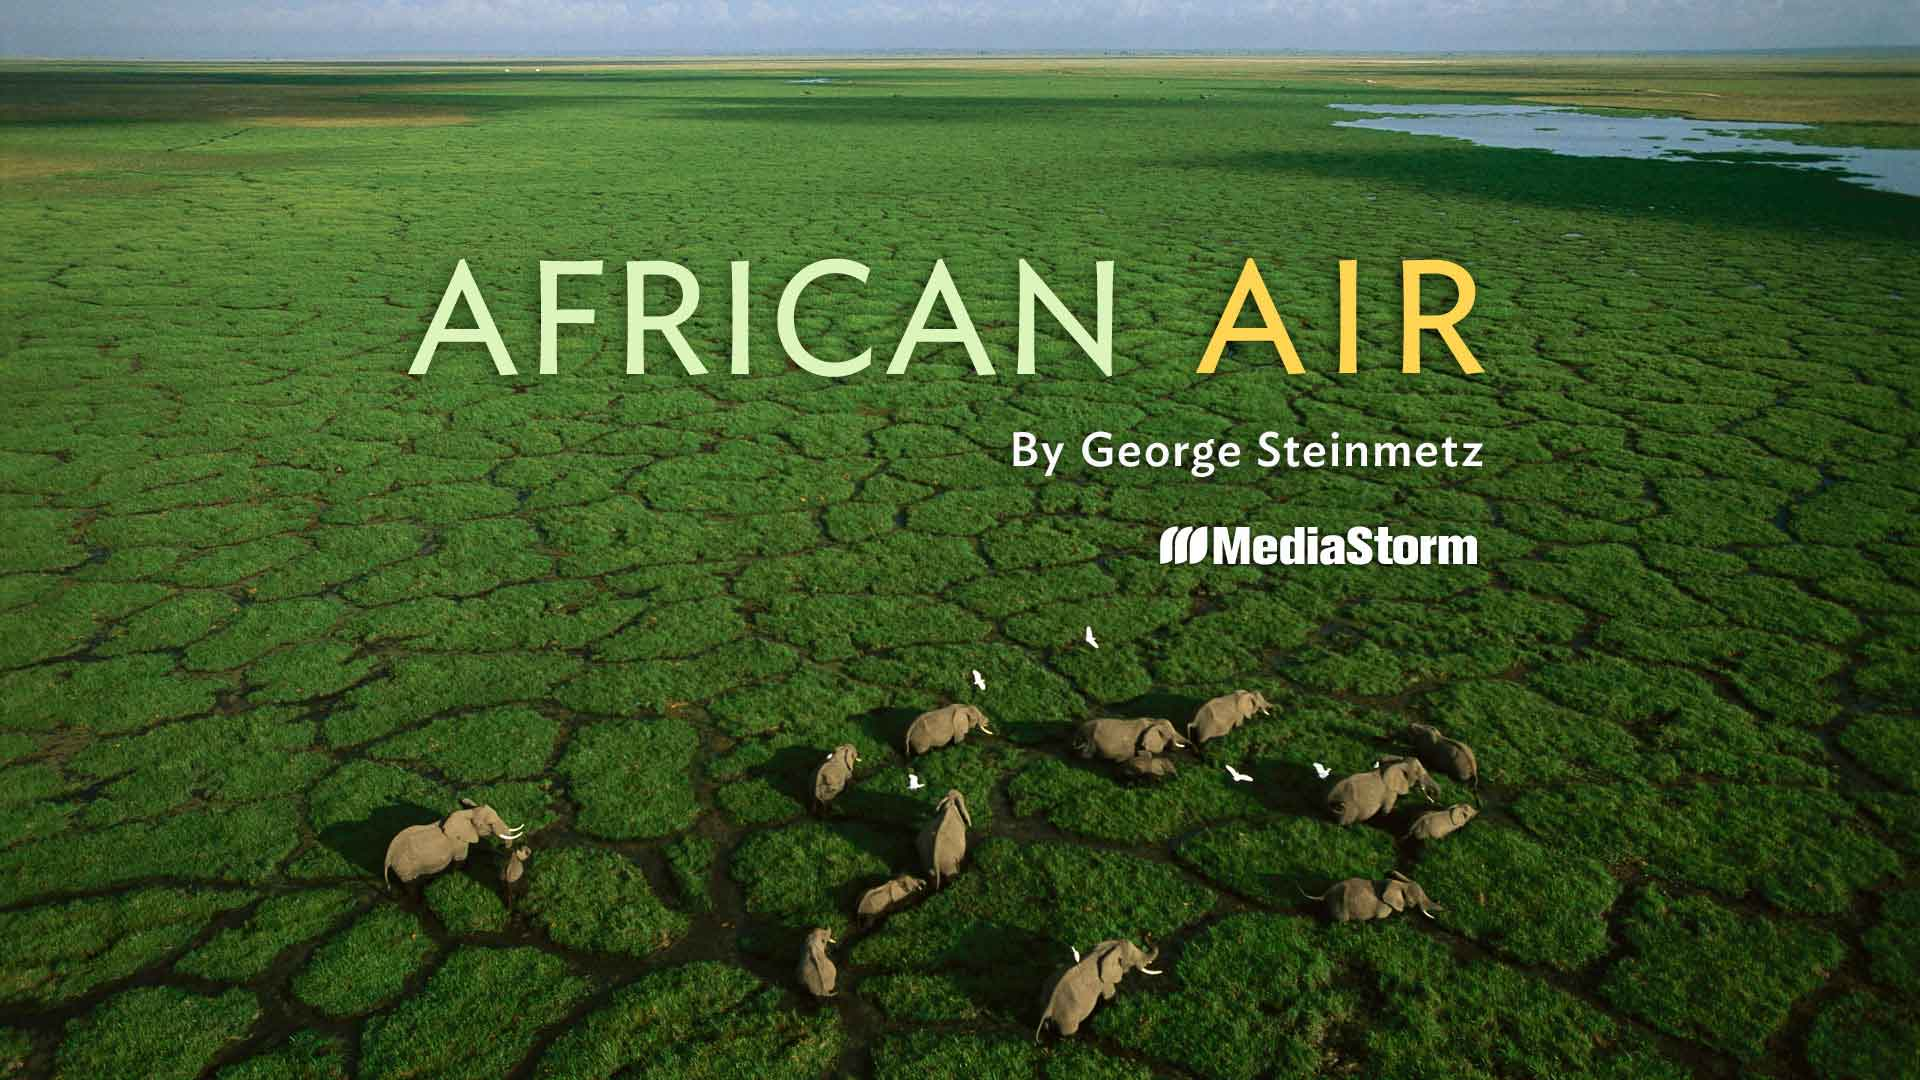 African Air - image